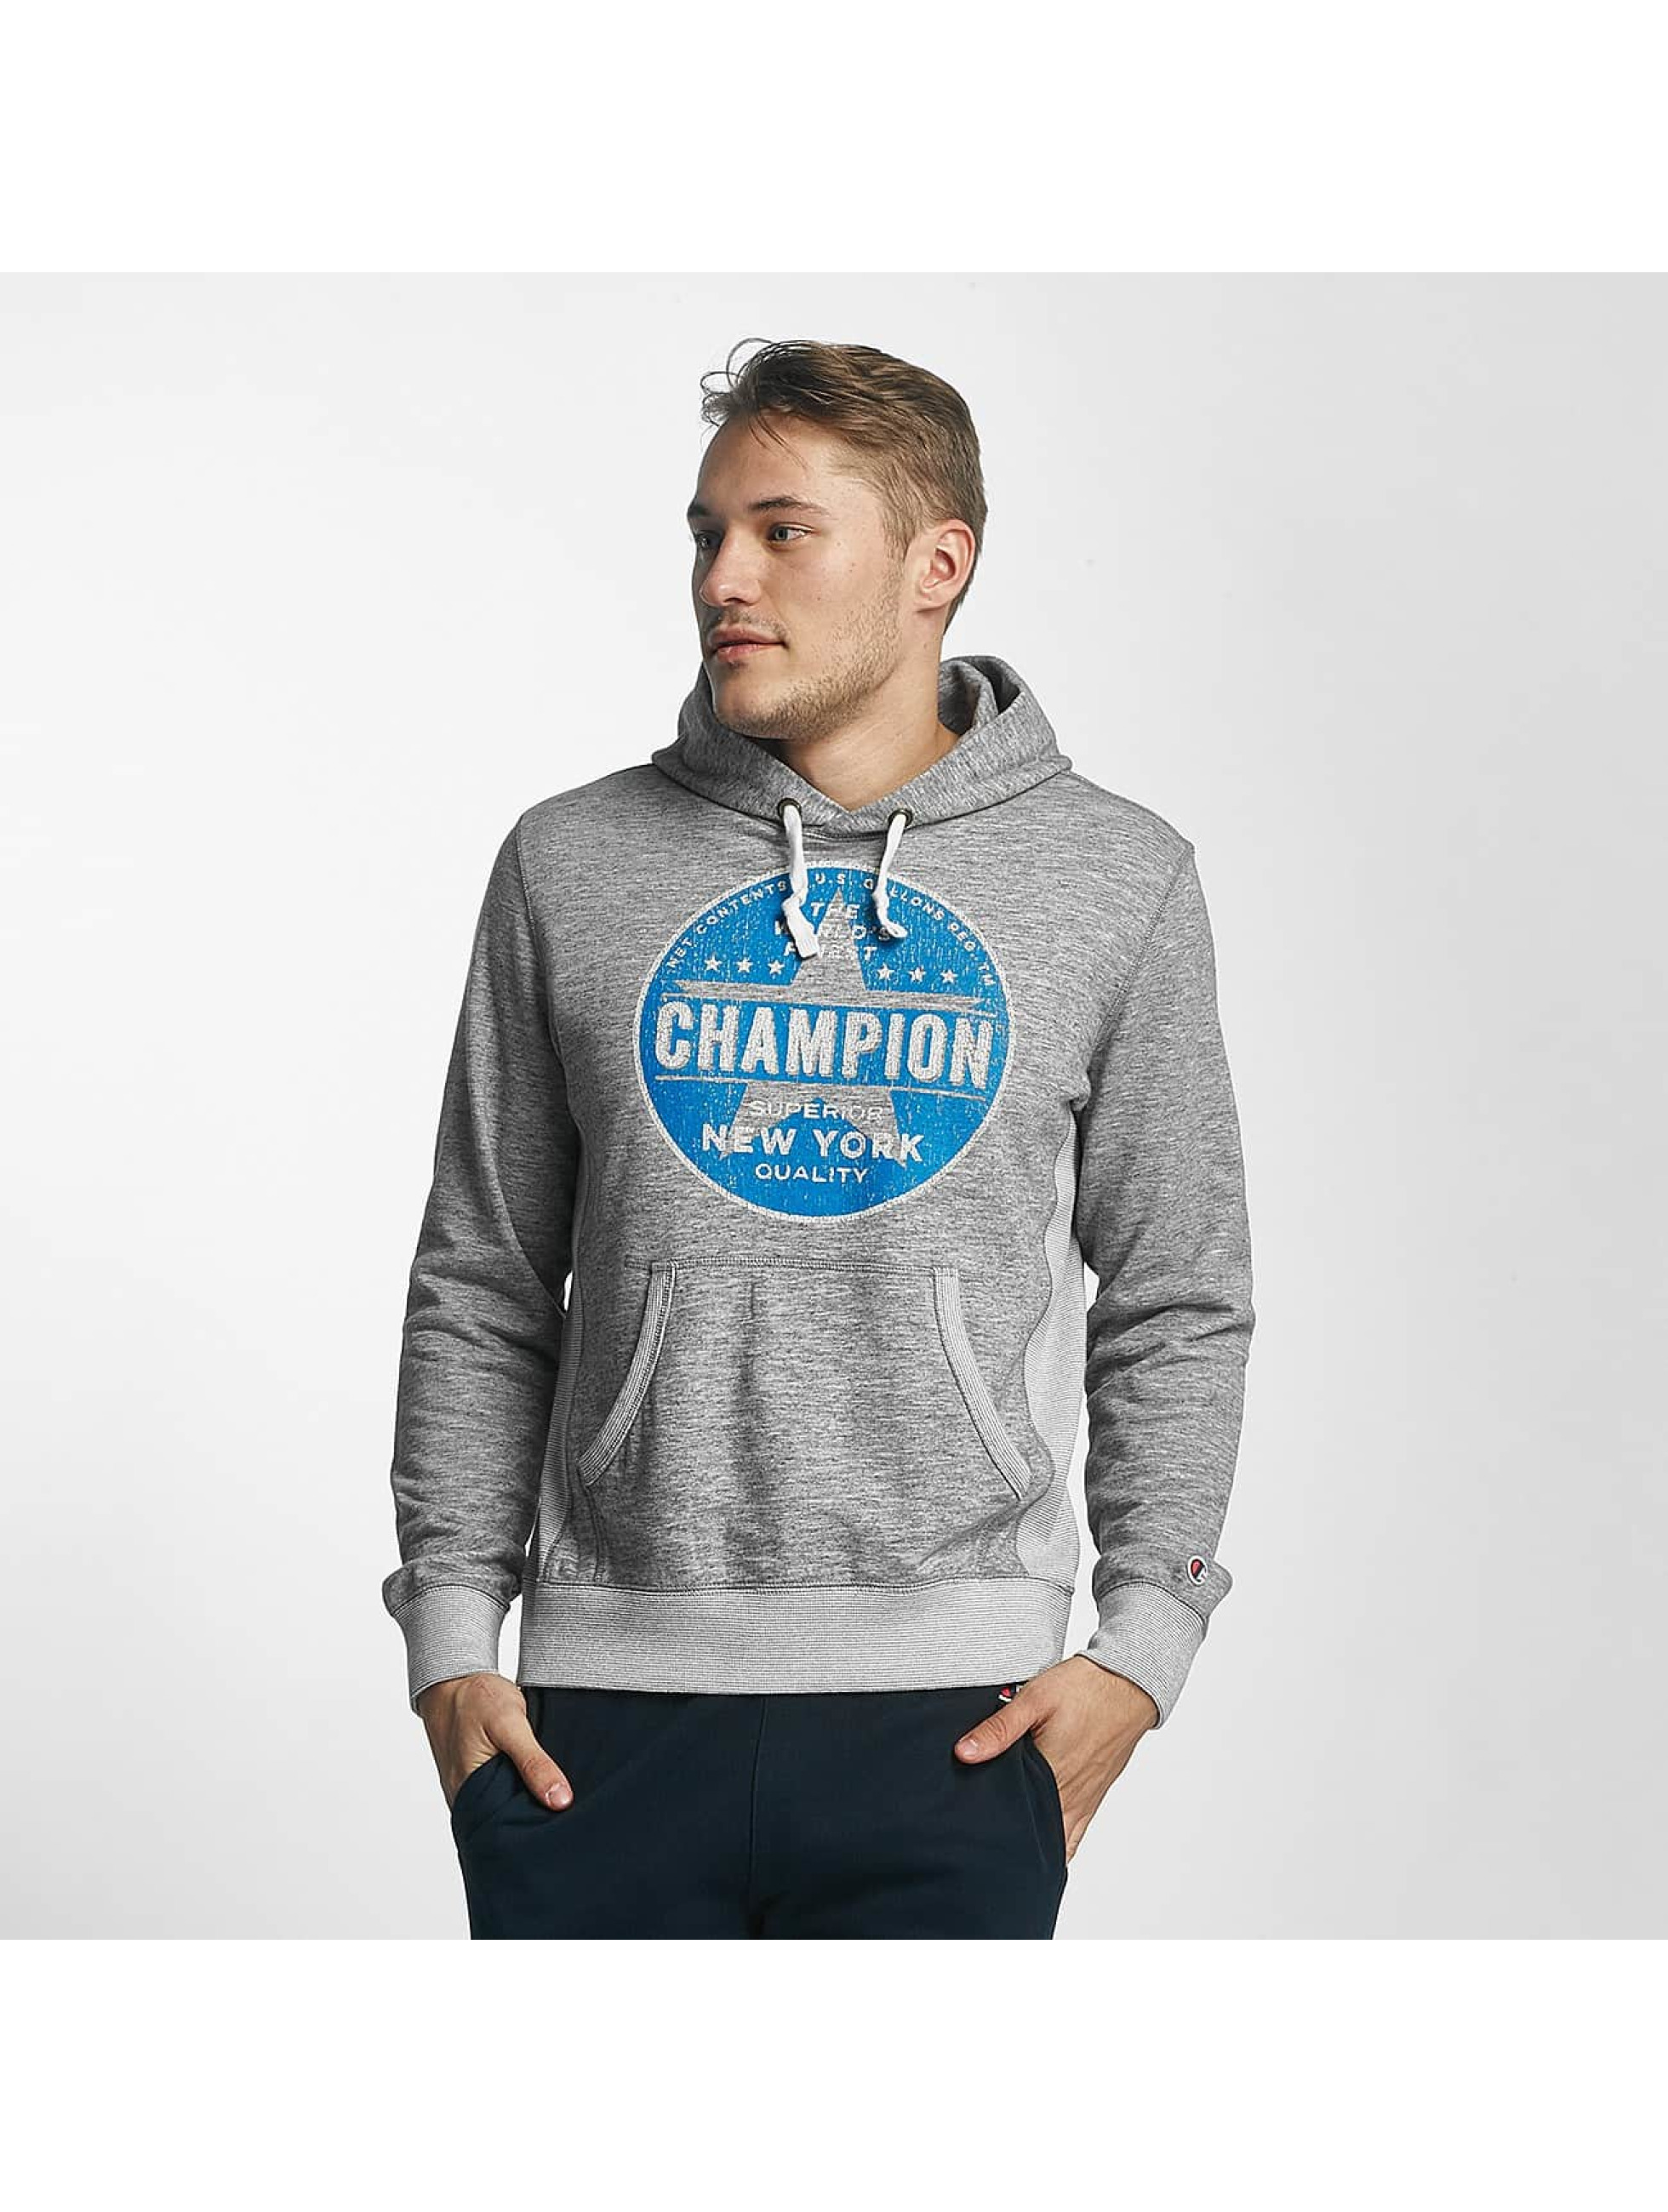 Champion Athletics Männer Hoody New York in grau